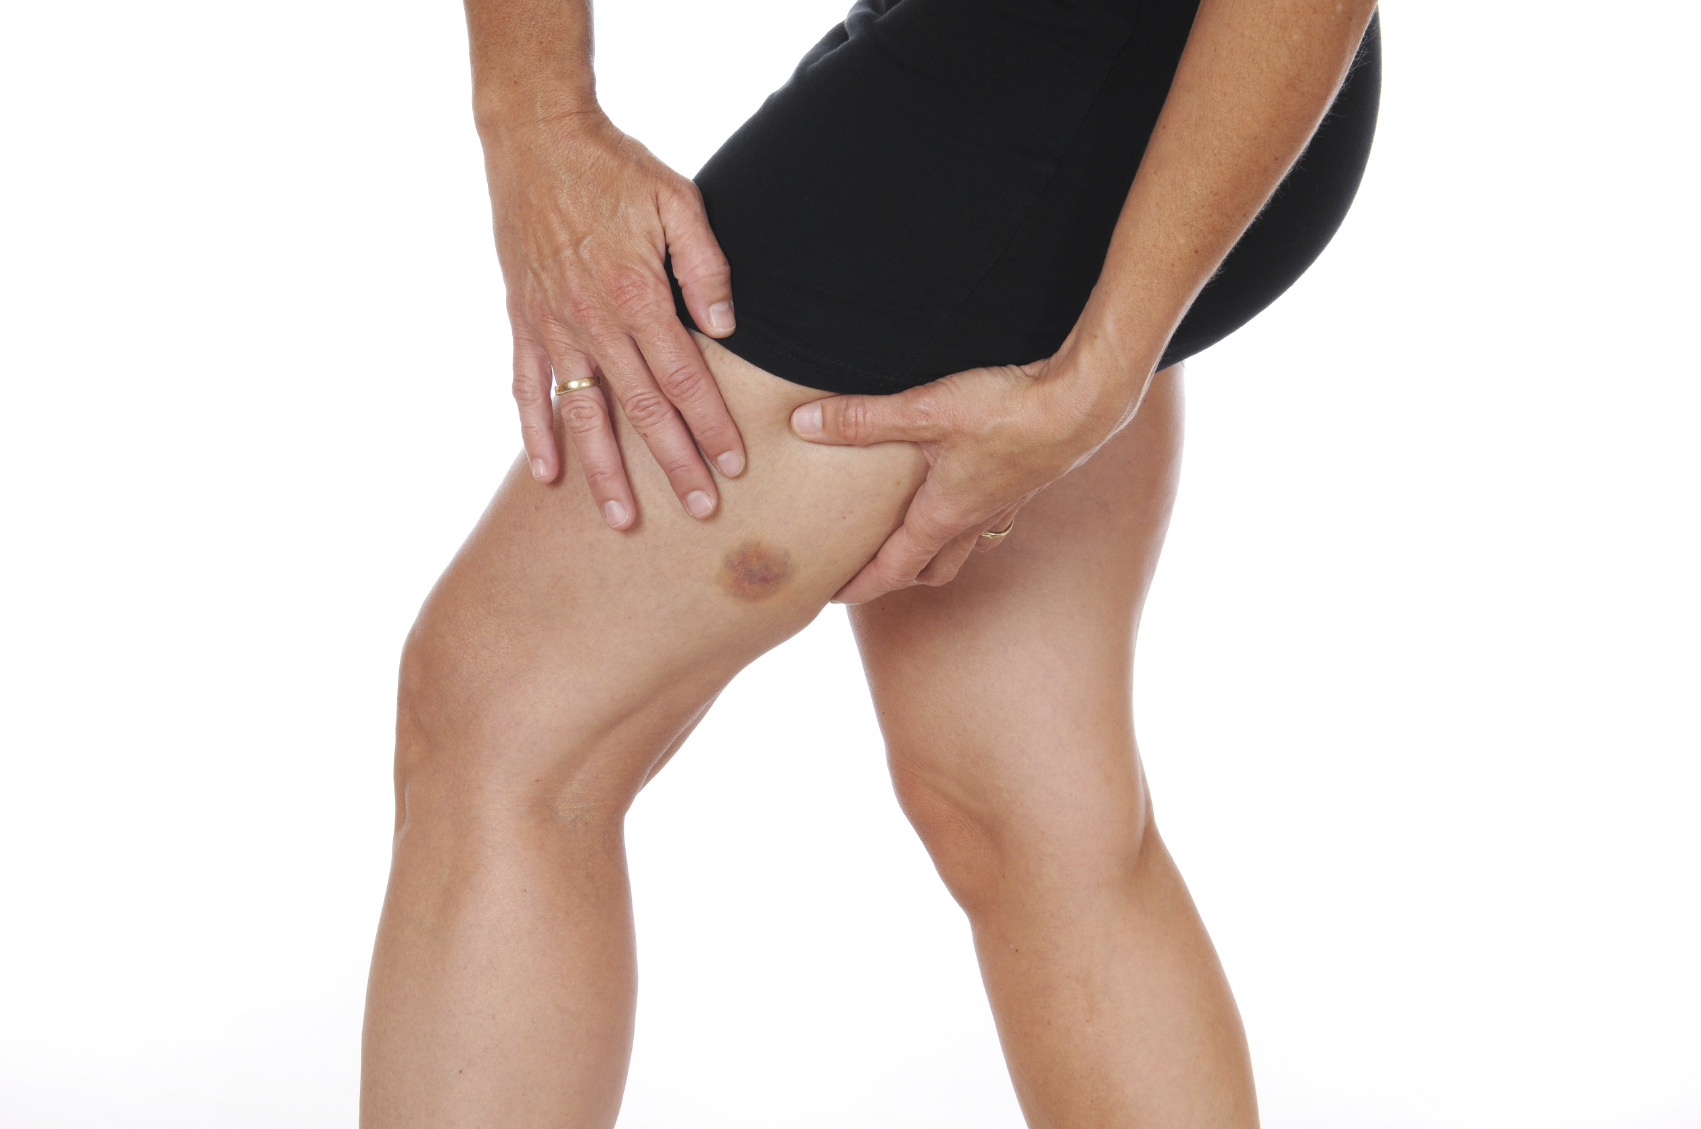 Fracture or Bone Bruise? How to Tell